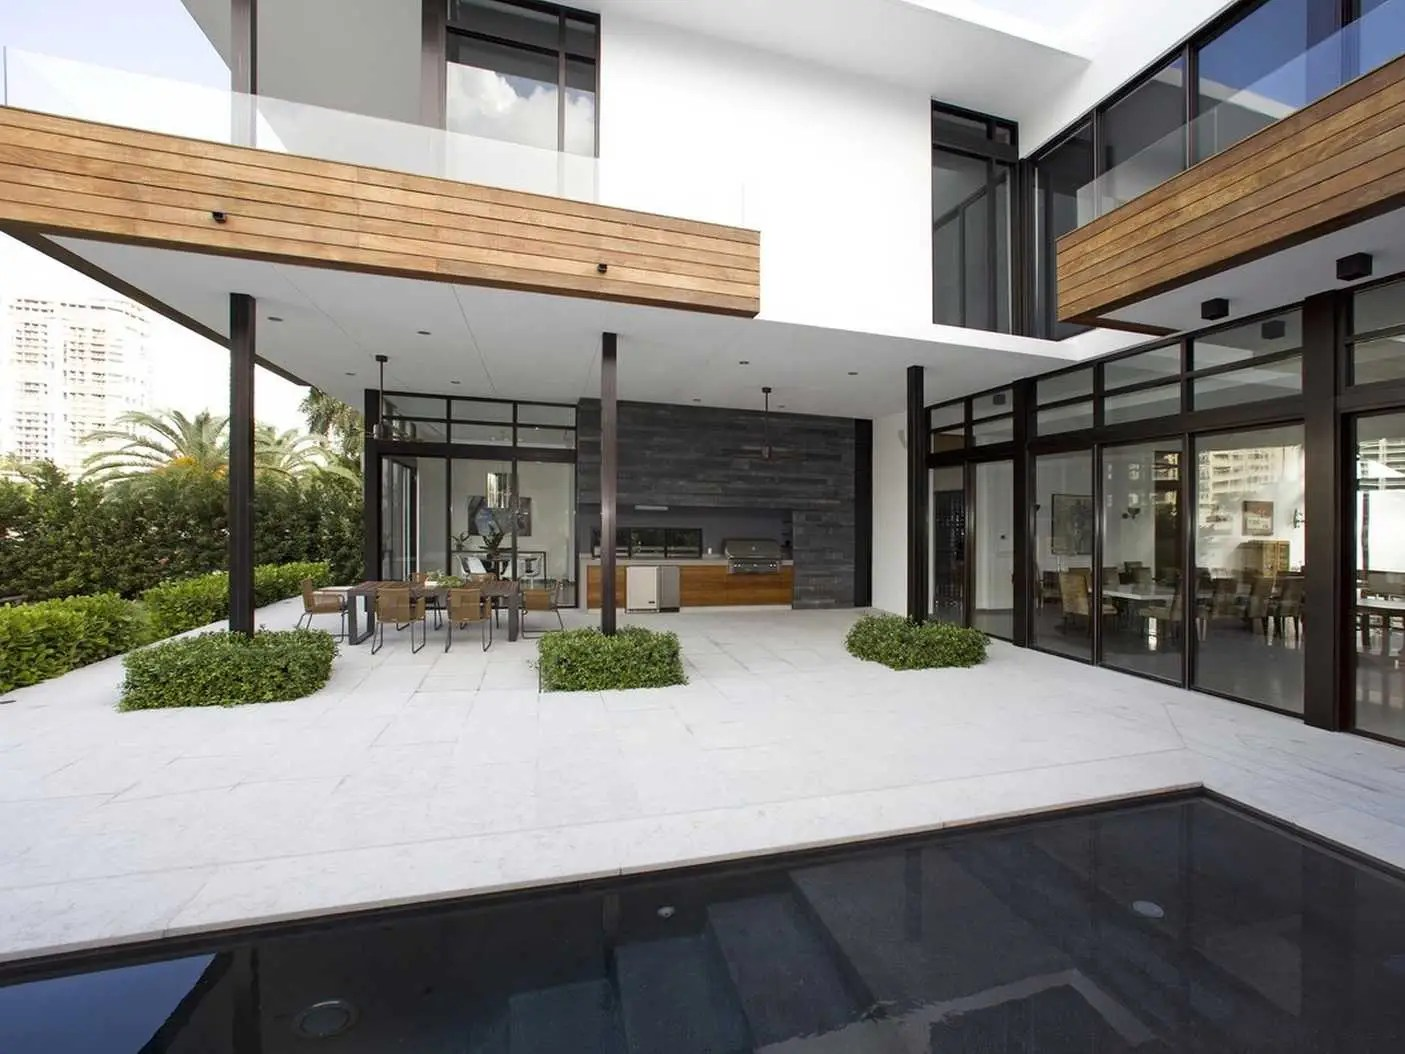 On the waterfront side of the home, there is an infinity-edge pool, barbecue grill, bar, and covered seating area.